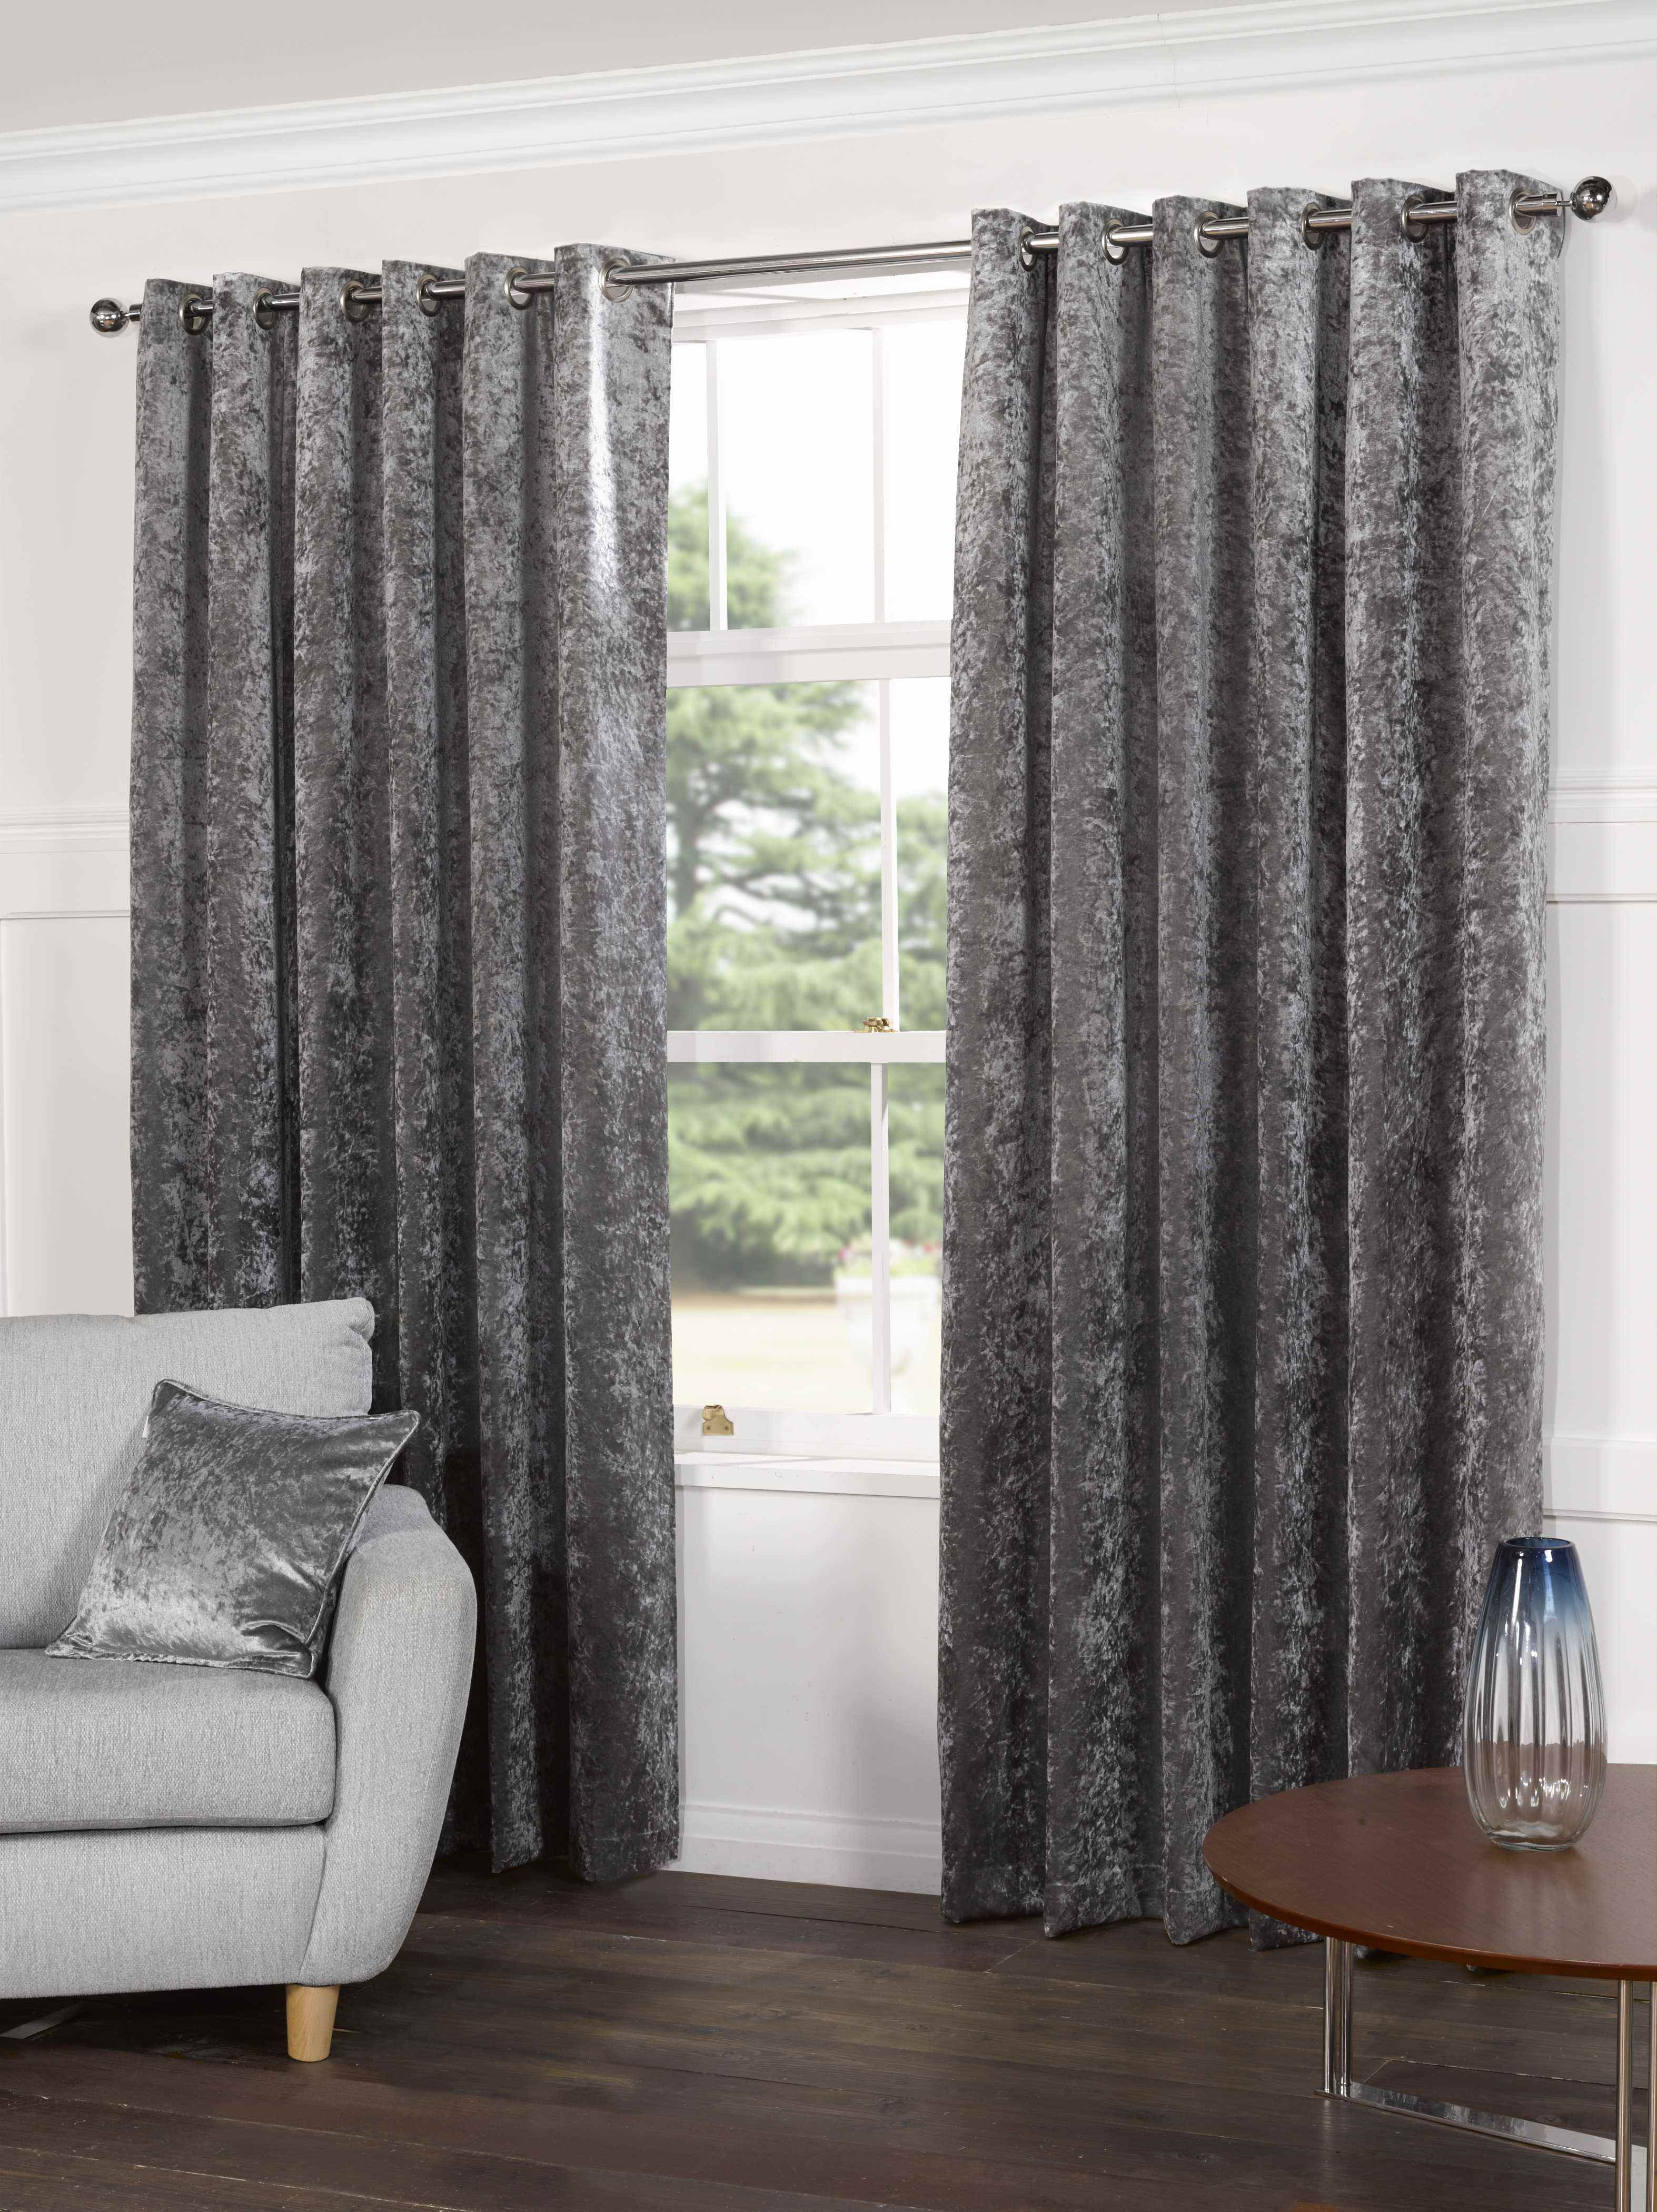 eastop by summer pin rooms curtains living rmc cranberry palace on and pinterest room made curtain drapes kim ready